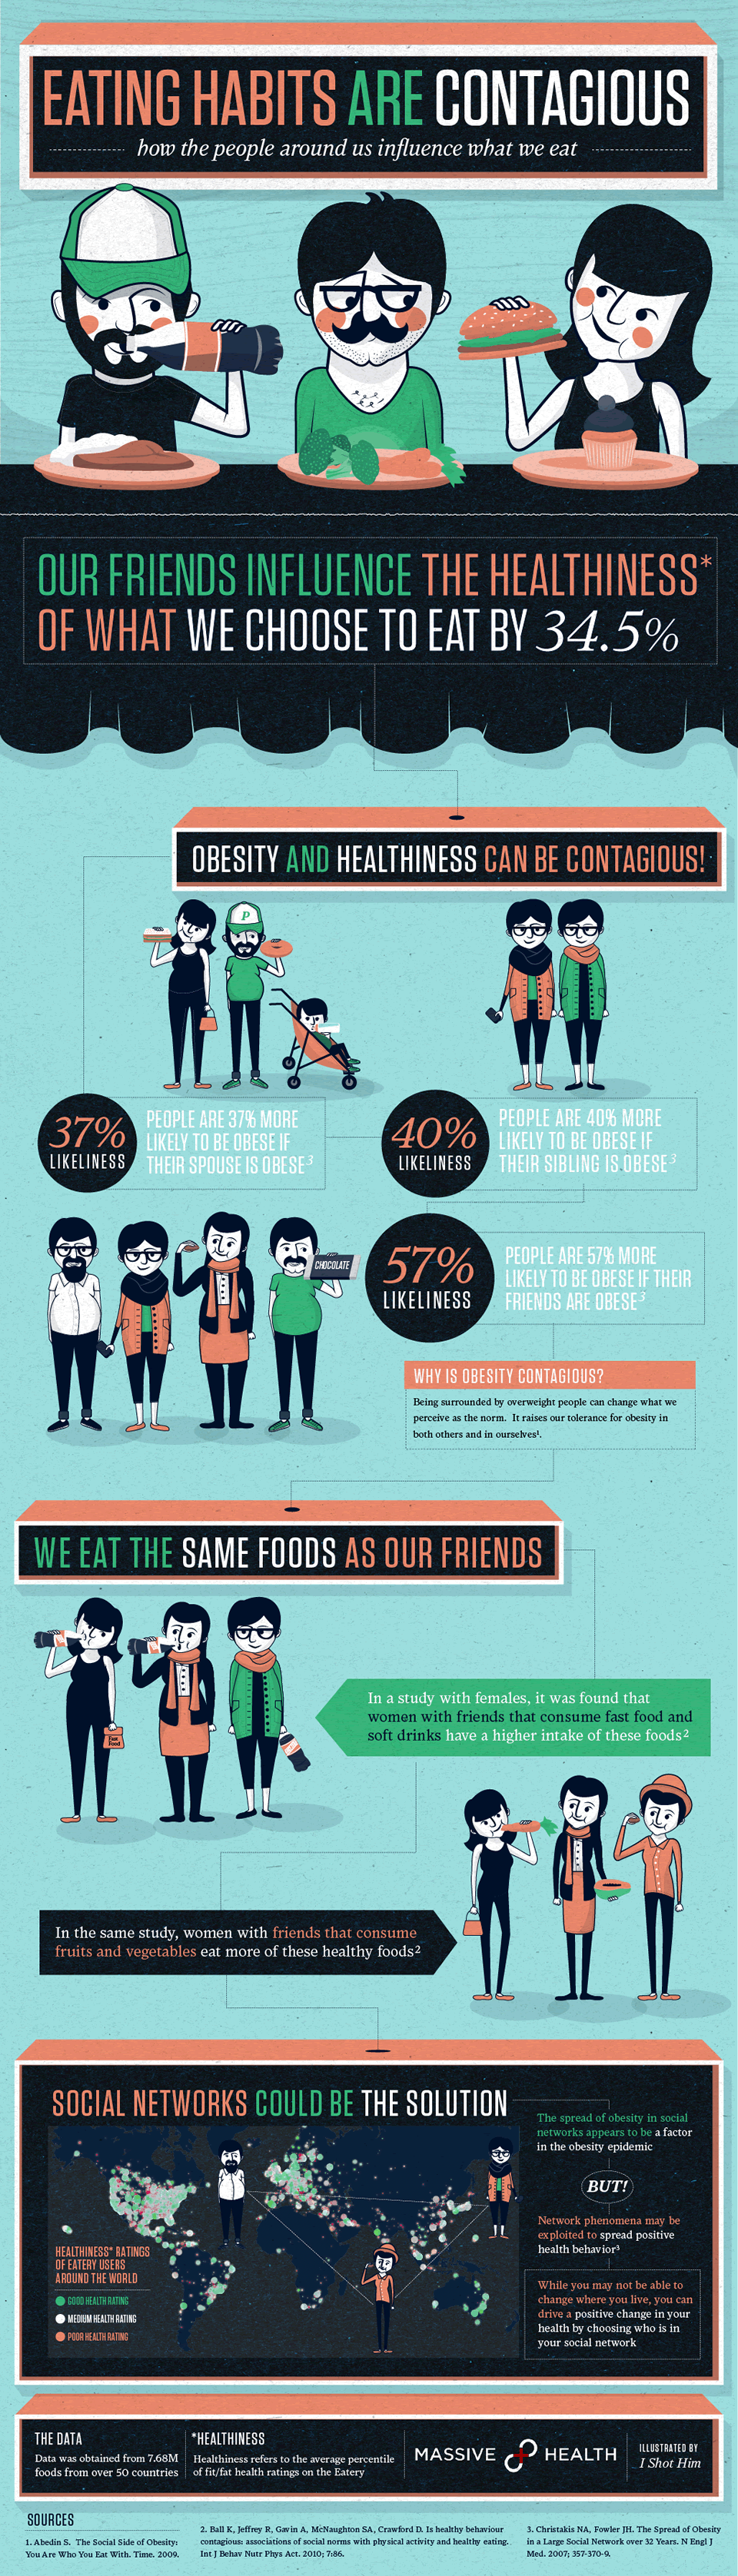 Eating Habits Are Contagious: How the People Around Us Influence What We Eat Infographic